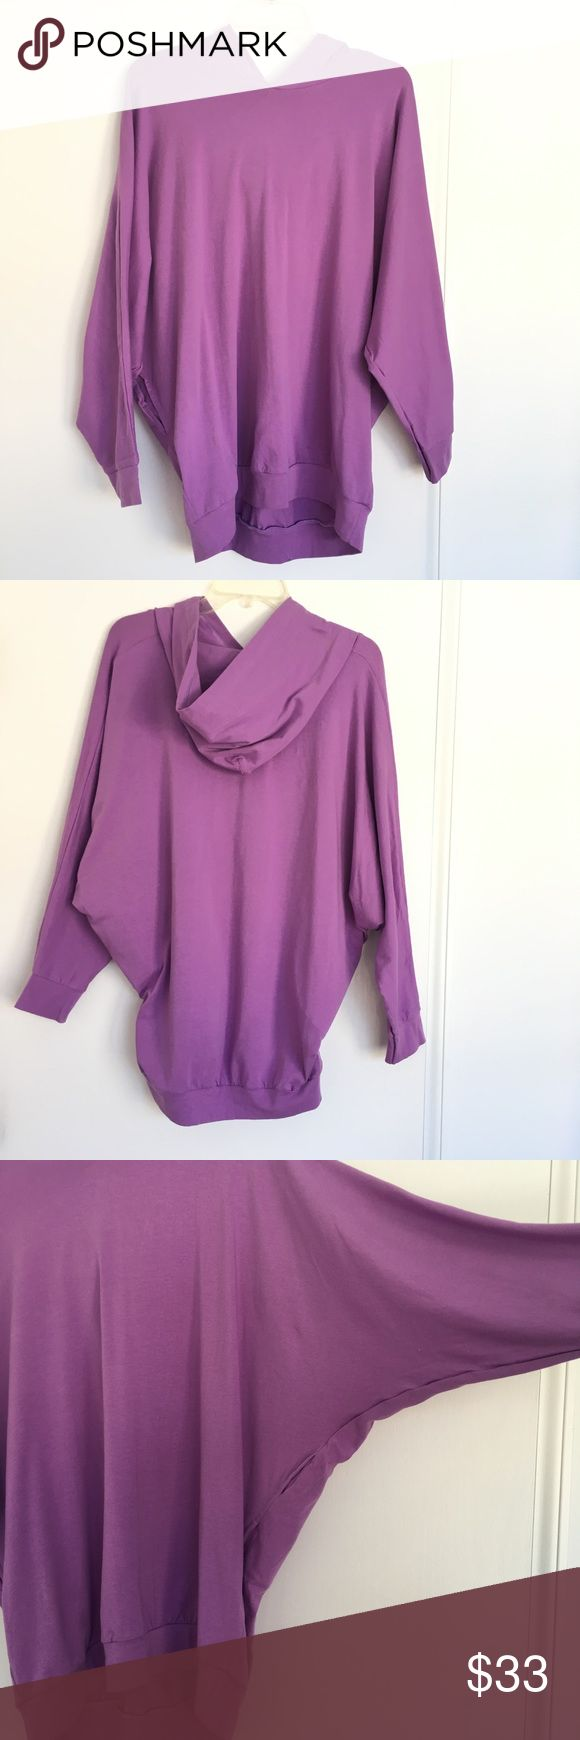 NWT Rare American Apparel Lilac Batwing Hoodie Original American Apparel (before relaunch) batwing hoodie, One Size.   Lightweight, stretchy cotton with dolman sleeves, pockets, and a hood.   For XS to L it would fit loose/oversized. The jersey is quite stretchy!   Small defect- one of the pockets appears to be partly sewn shut, but it's likely possible to undo the stitching. There's also a small yellow spot (see last photo) on the inside of the hoodie near the tags, not visible at all when…